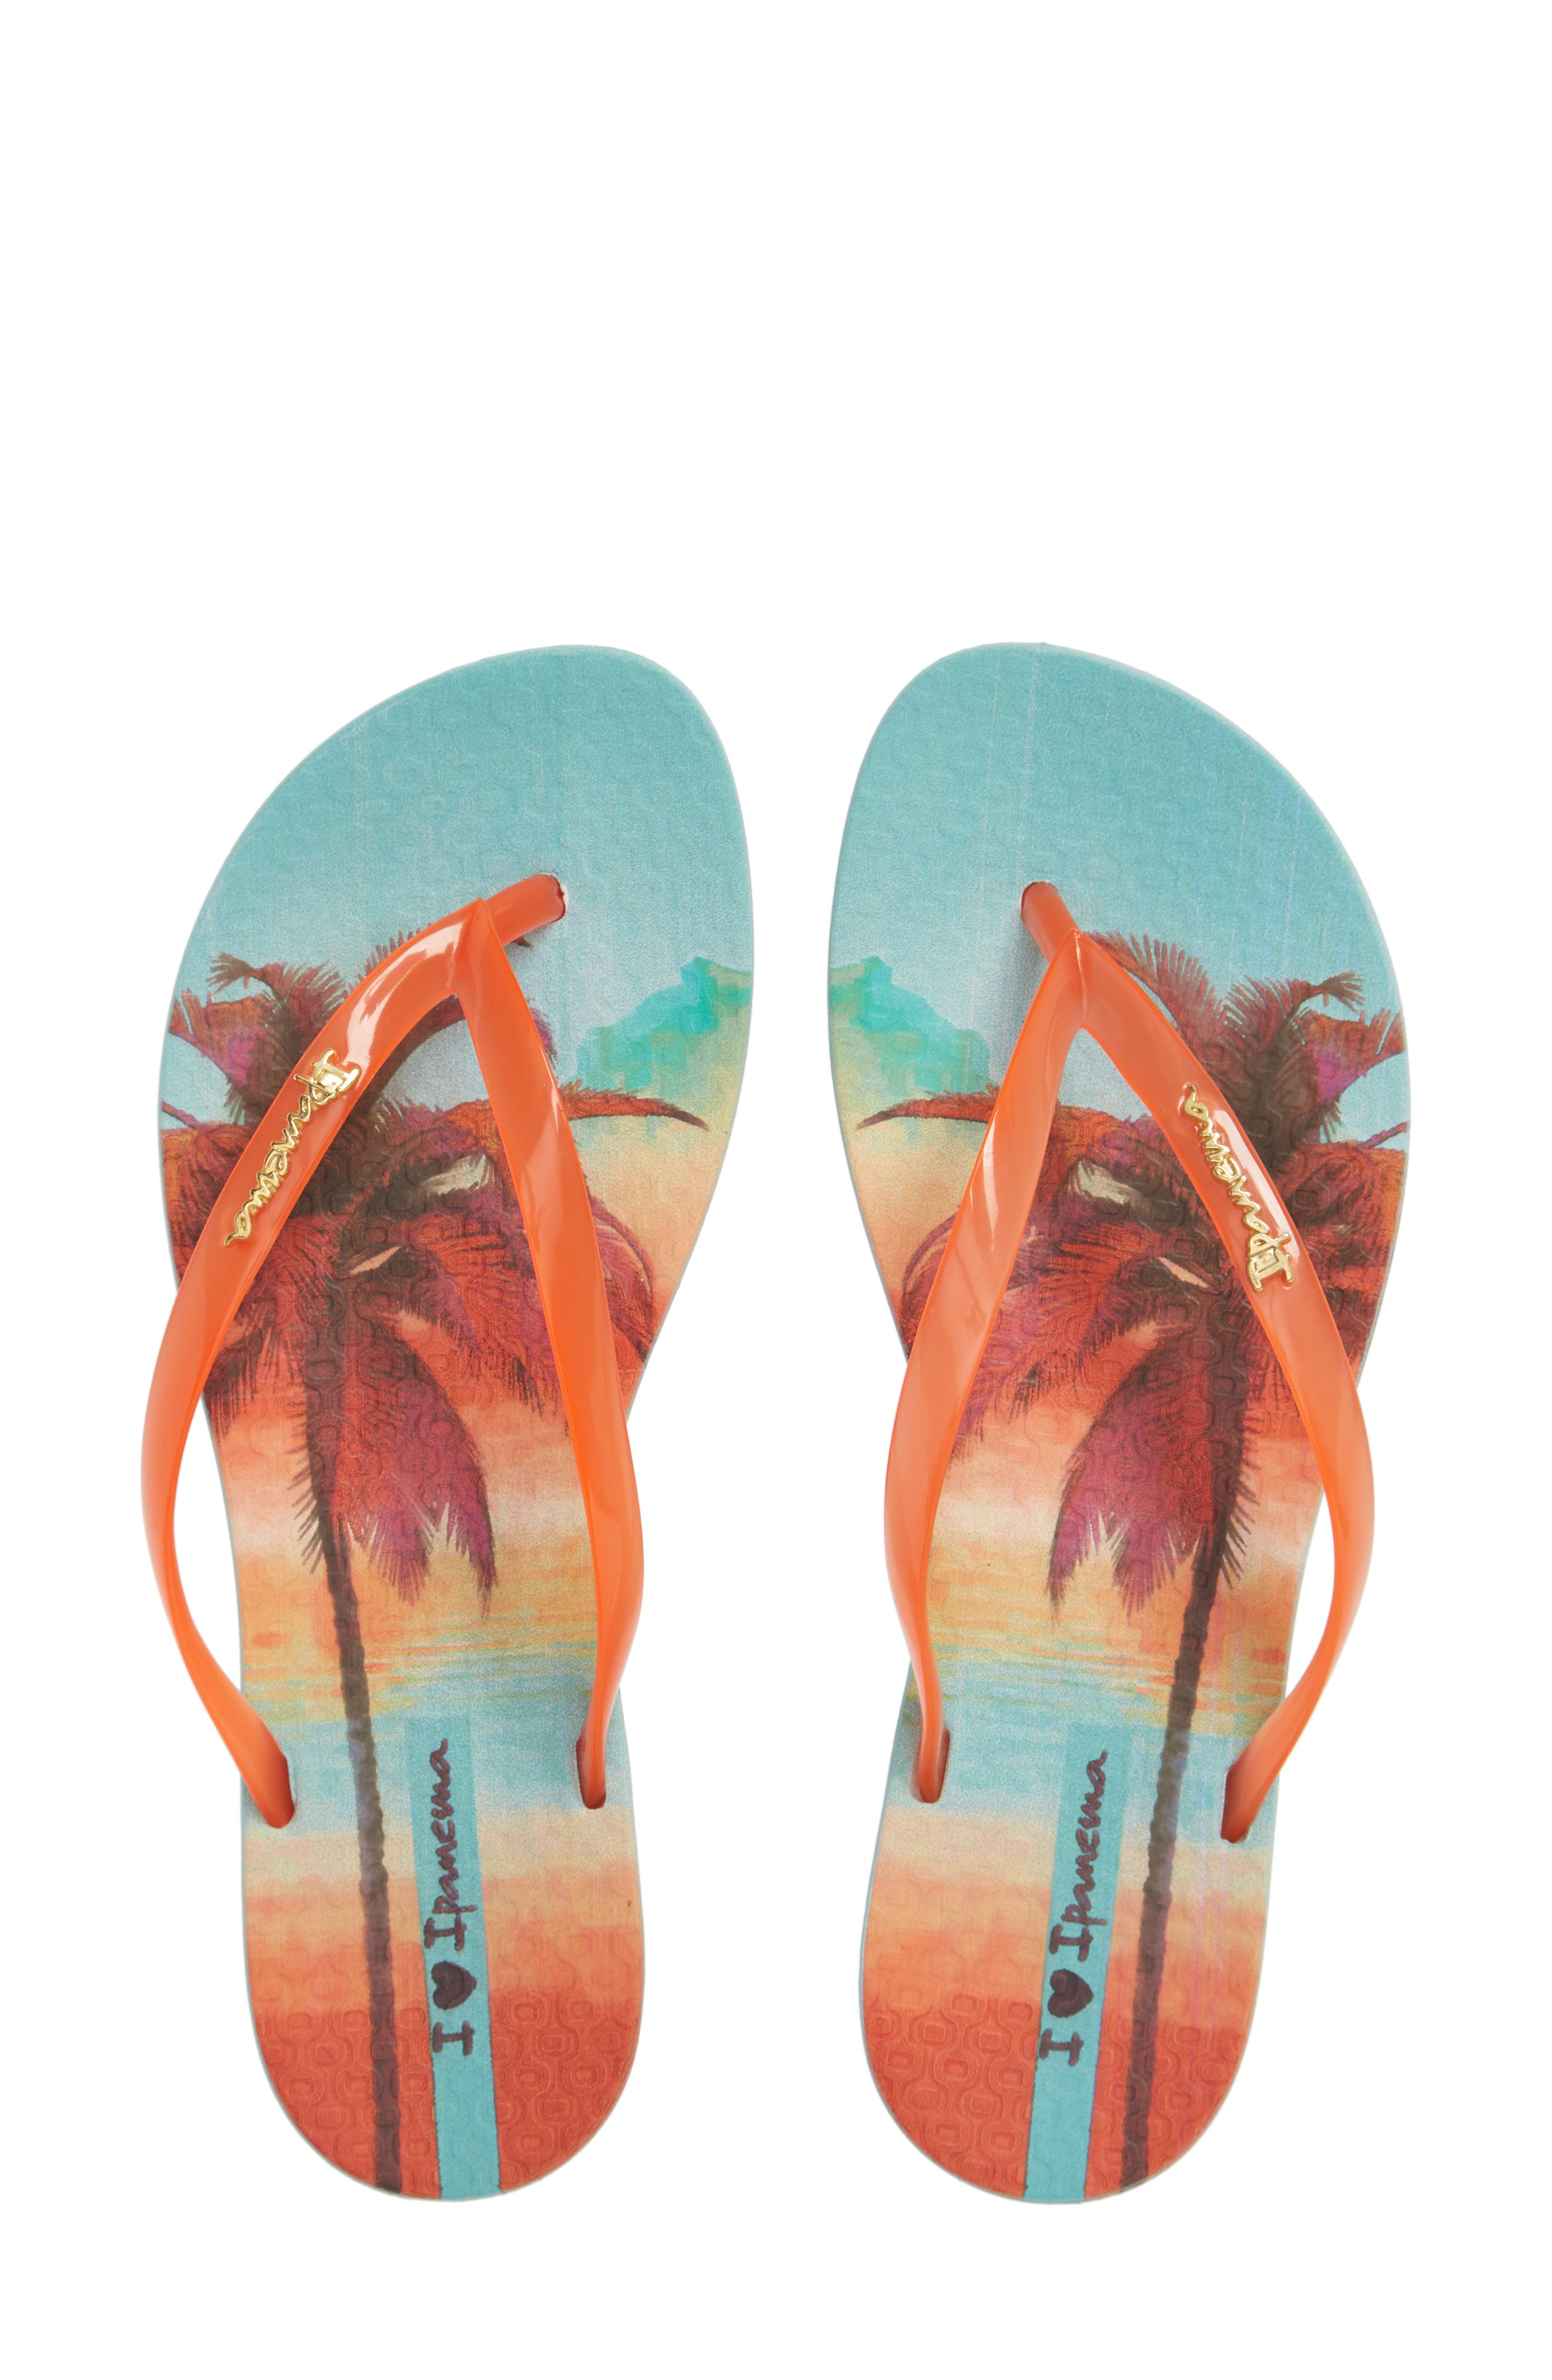 39e668685 Ipanema Flip-Flops   Sandals for Women